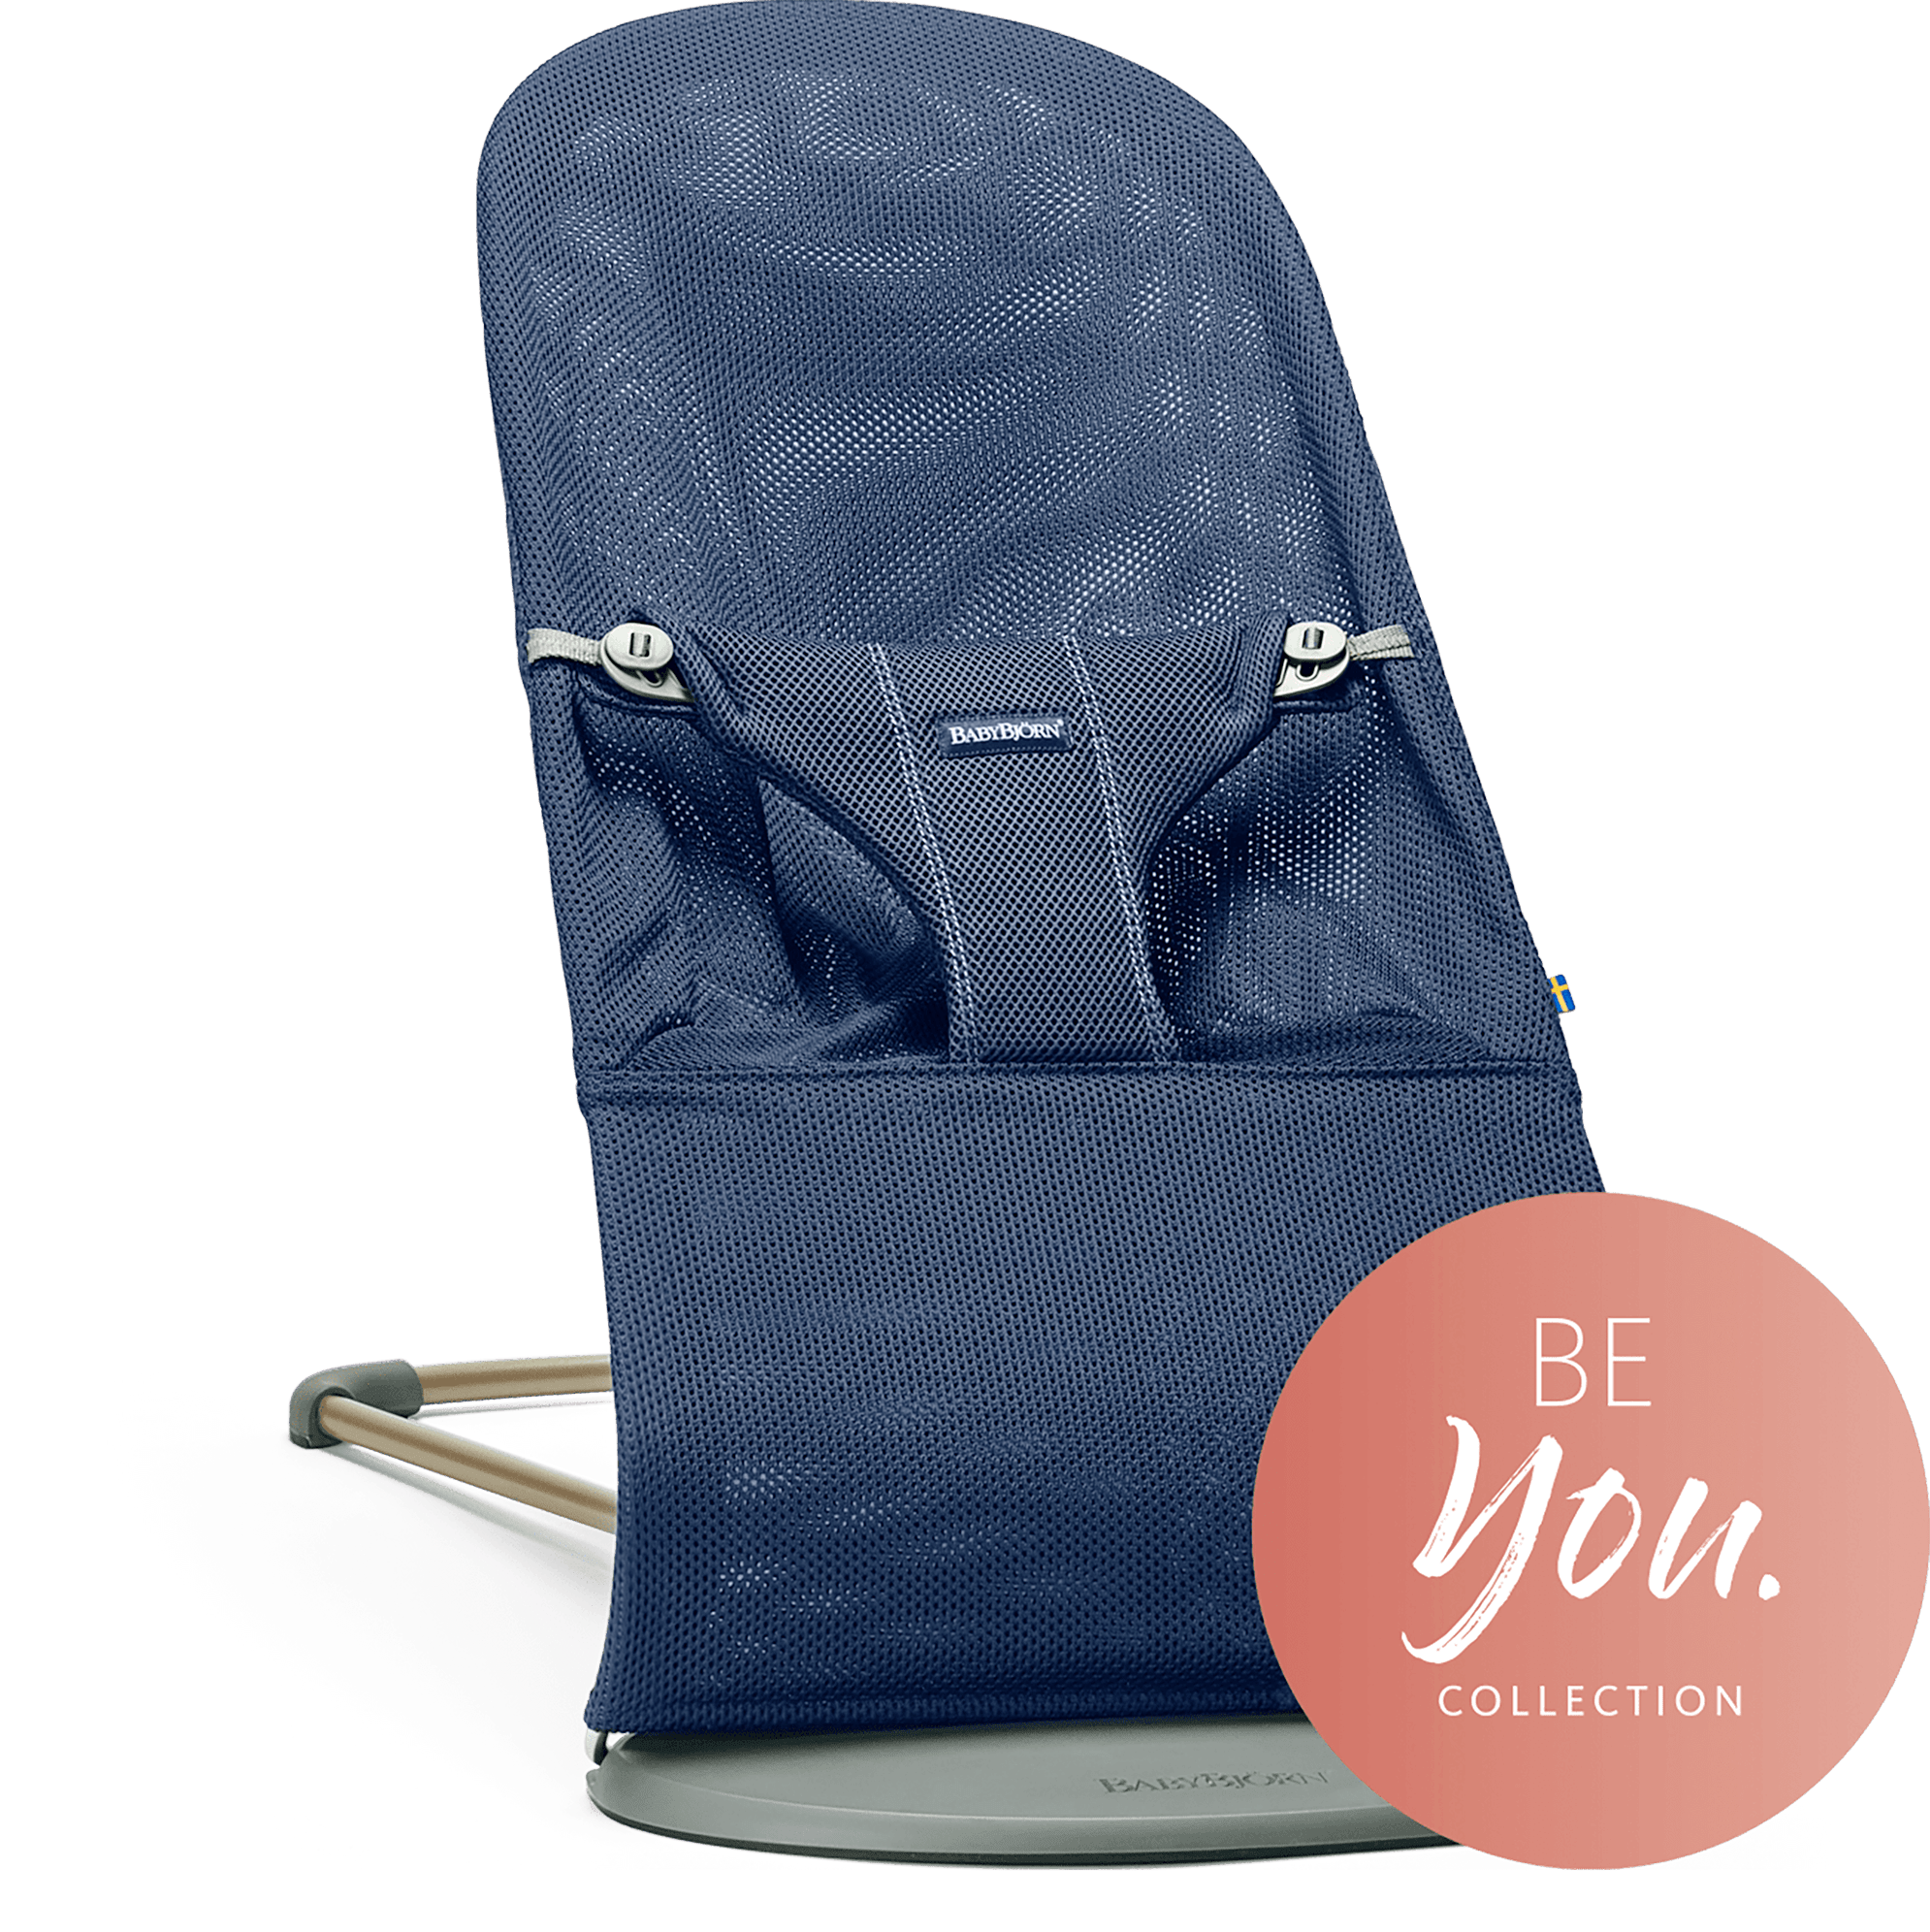 Šūpuļkrēsliņš BabyBjorn Bouncer Bliss Mesh navy blue 006003